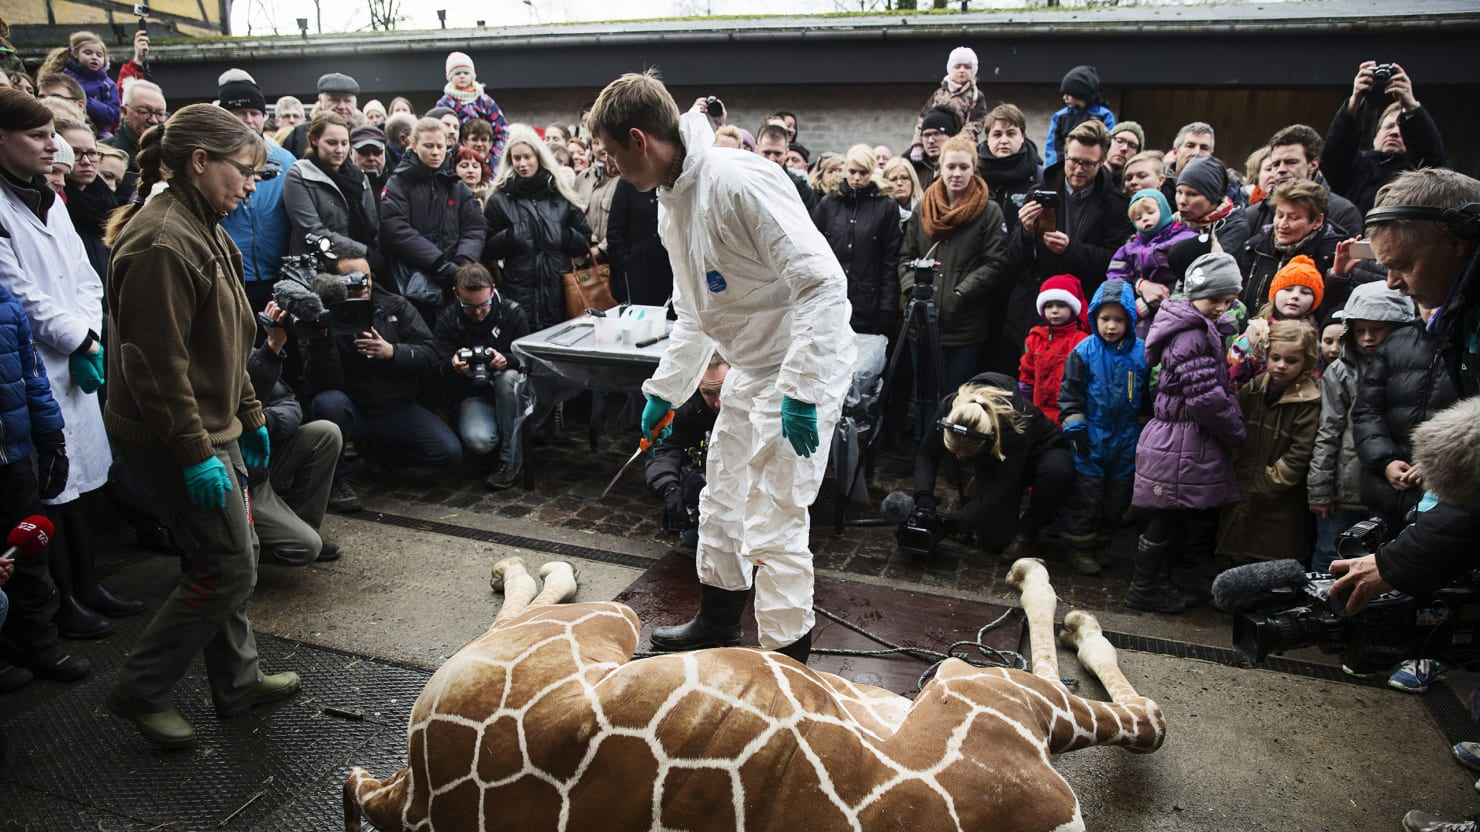 At the Copenhagen Zoo, Humans Can Be Animals